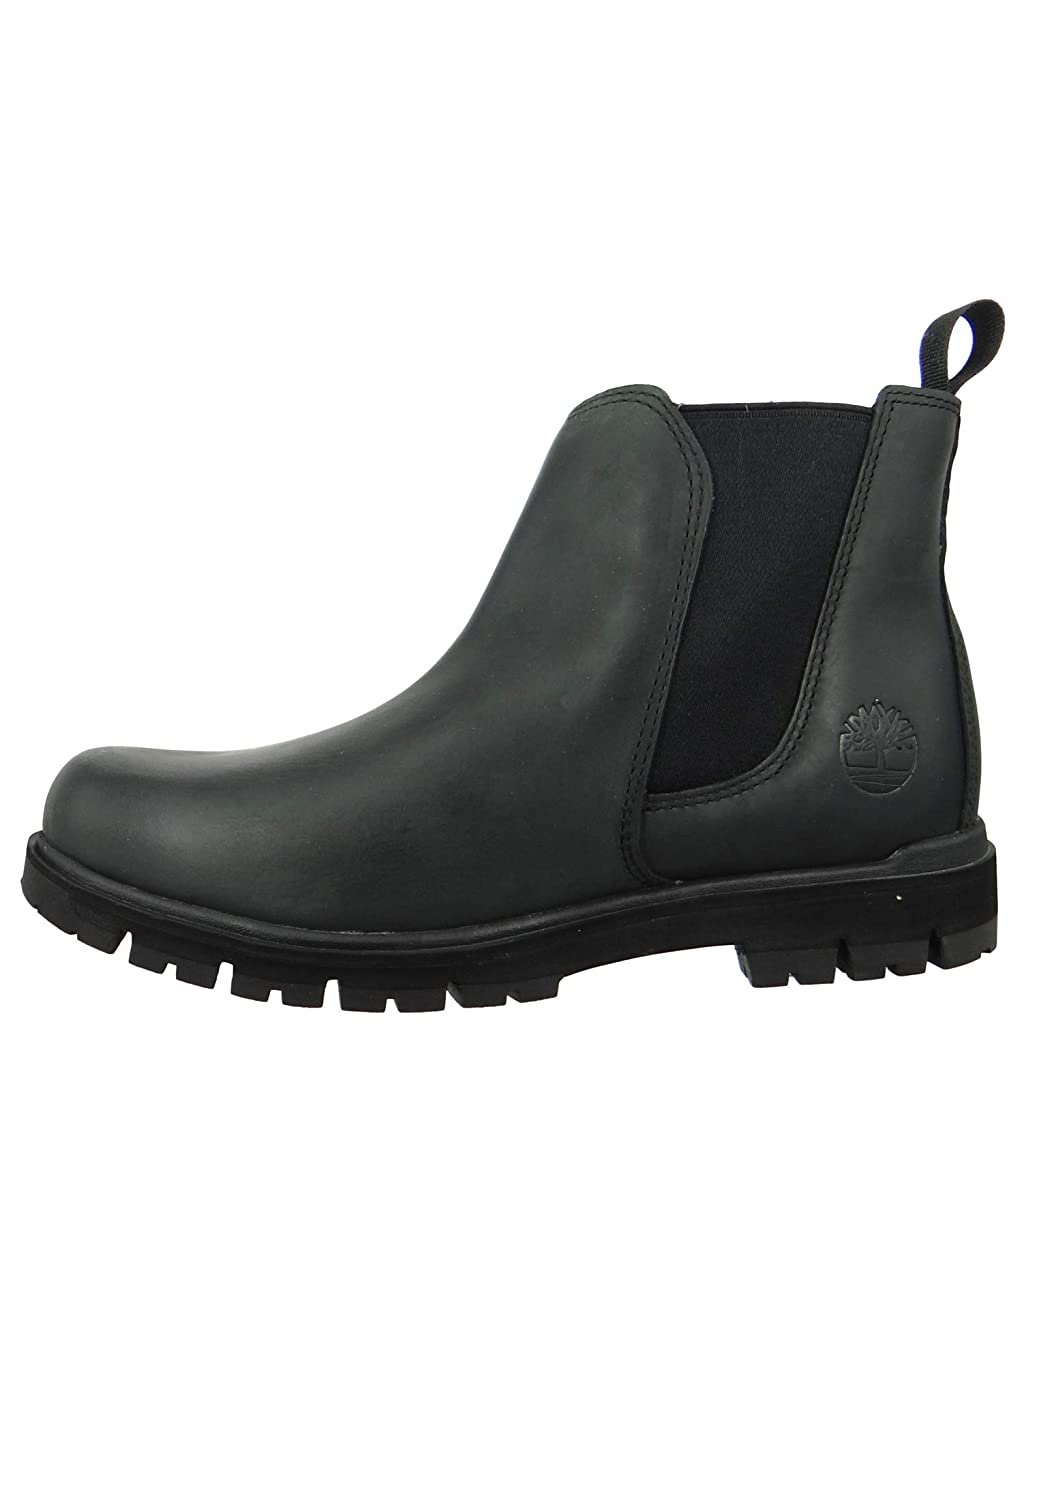 f0e1692223e5 Mens Timberland Radford PT Chelsea Leather Walking Hiking Ankle Boots   Amazon.co.uk  Shoes   Bags